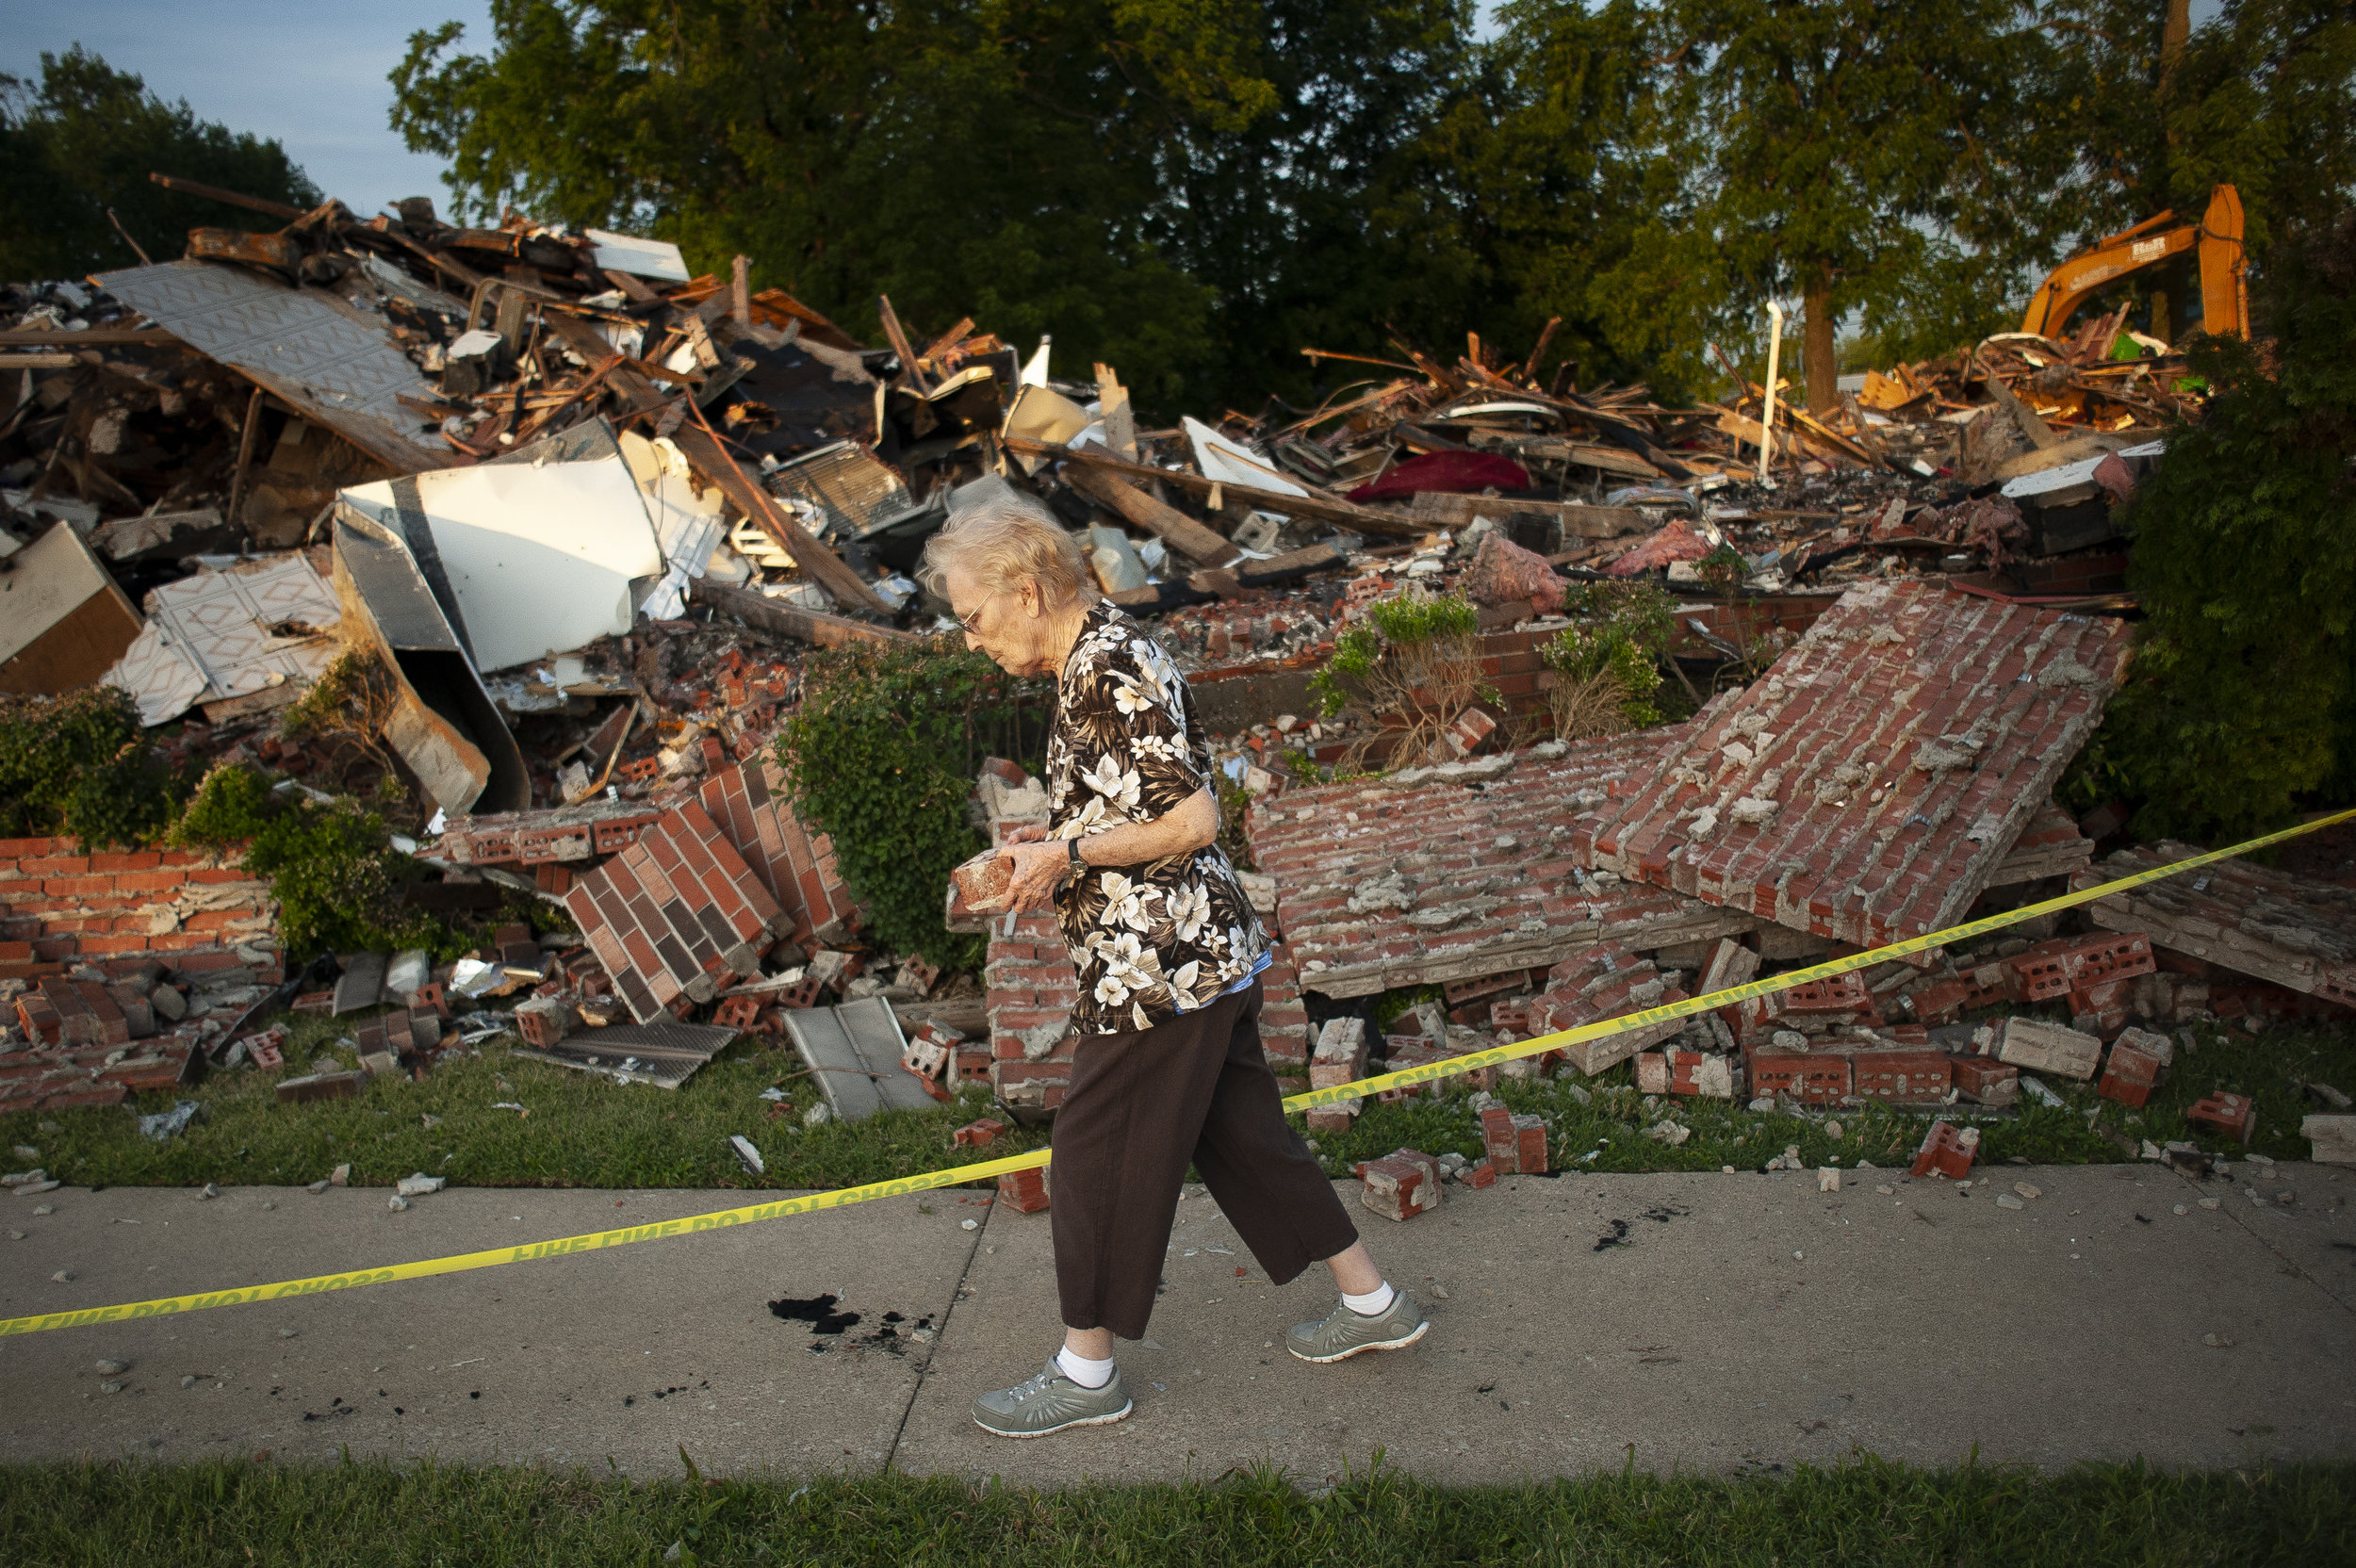 "Arleen Tipsword, who at age 90 believes herself to be the oldest member of Cornerstone Wesleyan Church, takes a brick as a souvenir from the remains of the church Saturday, June 22, 2019, at 210 E Outer Road in Scott City, Missouri. ""It's heartbreaking,"" Tipsword said of the building that was destroyed in a fire during Friday afternoon's storm. ""I met my husband here in this church."" She believes it was 1978 when she first attended the church where she would marry her husband in 1985. ""I mean this is most wonderful church family that we can depend on,"" she said. Jacob Wiegand 